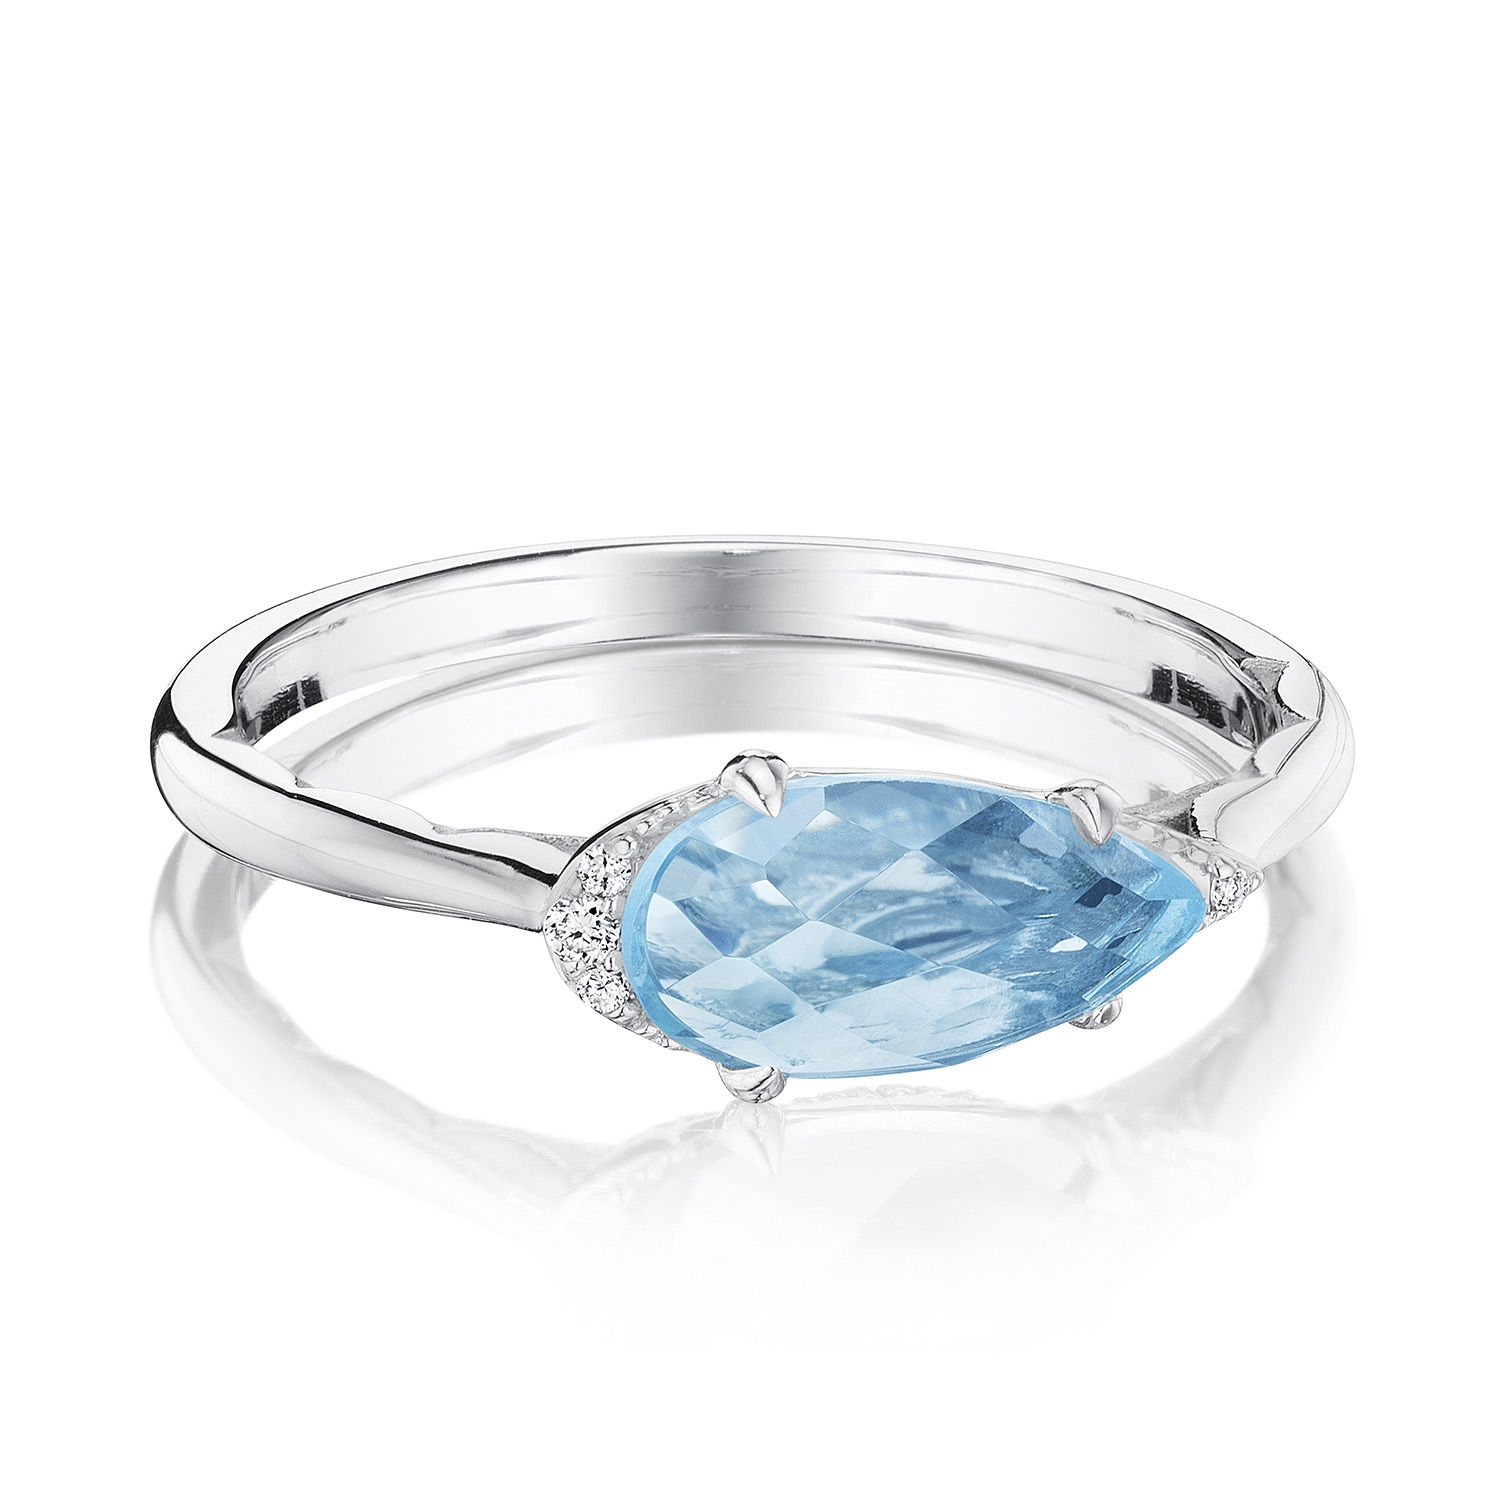 Tacori SR23302 Solitaire Pear-Shaped Ring with Sky Blue Topaz